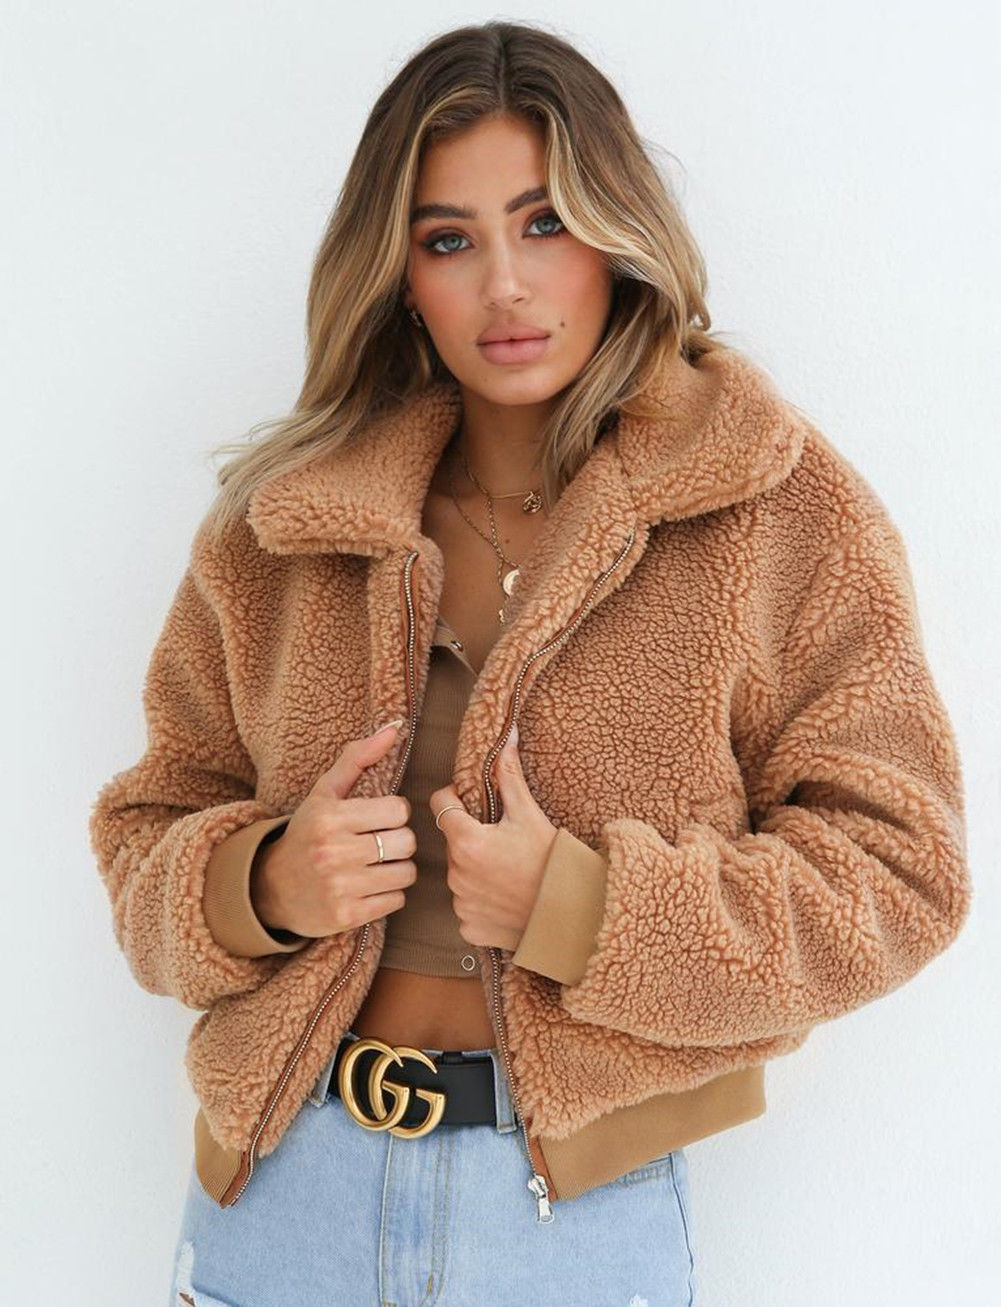 2019 Winter arrival Women Cotton Fluffy Long Sleeve Jacket Ladies Warm Outerwear Cardigan Coat